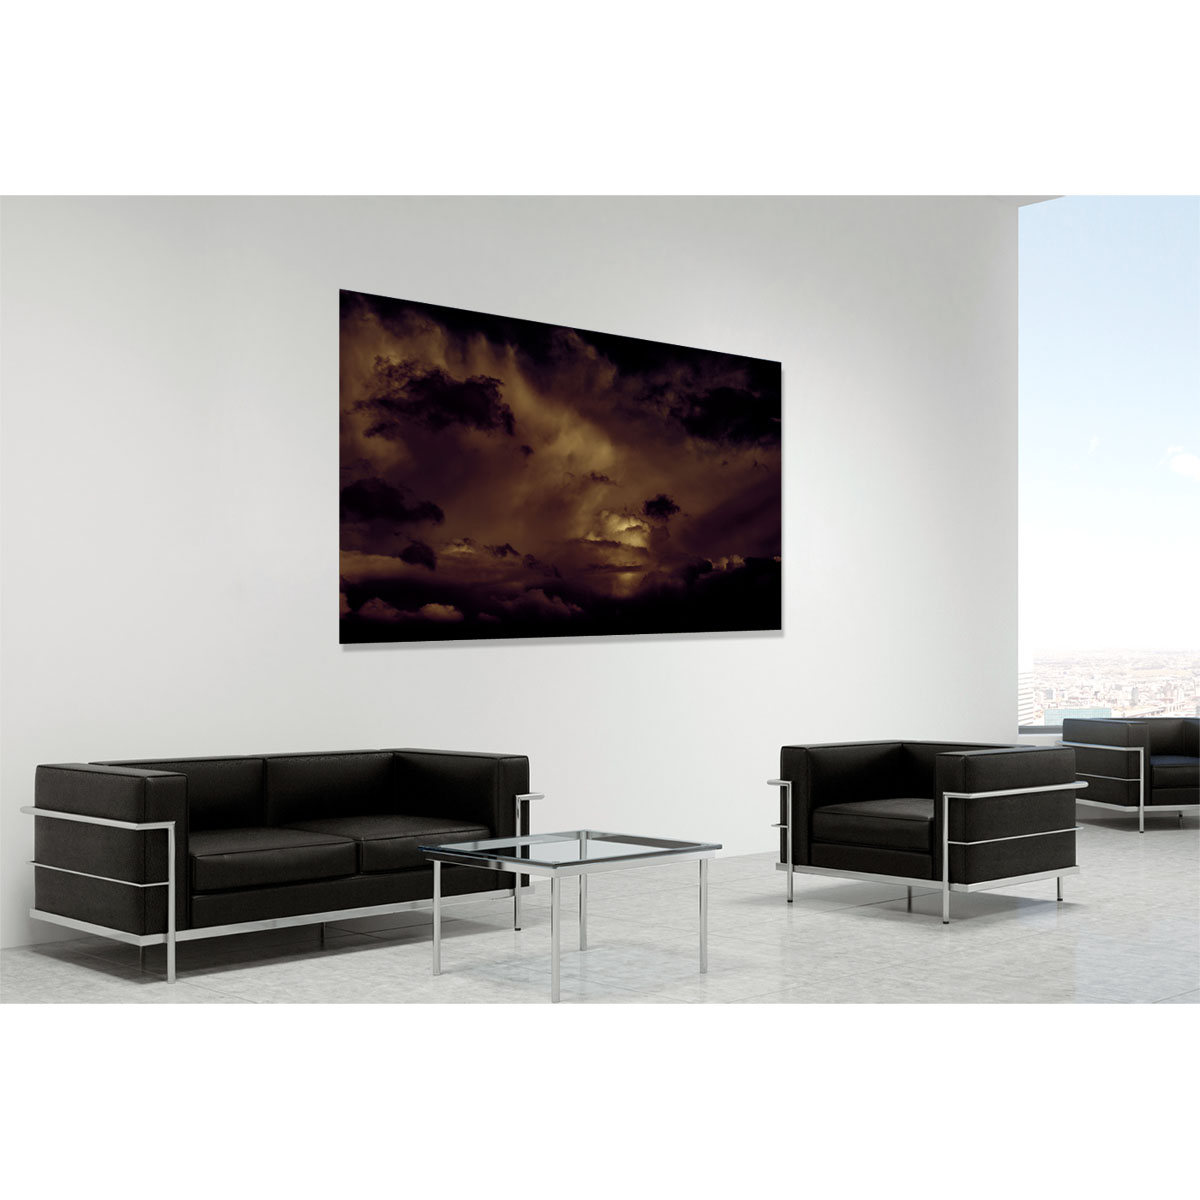 Boom - contemporary fine art photography of Ireland by Stephen S T Bradley in room setting